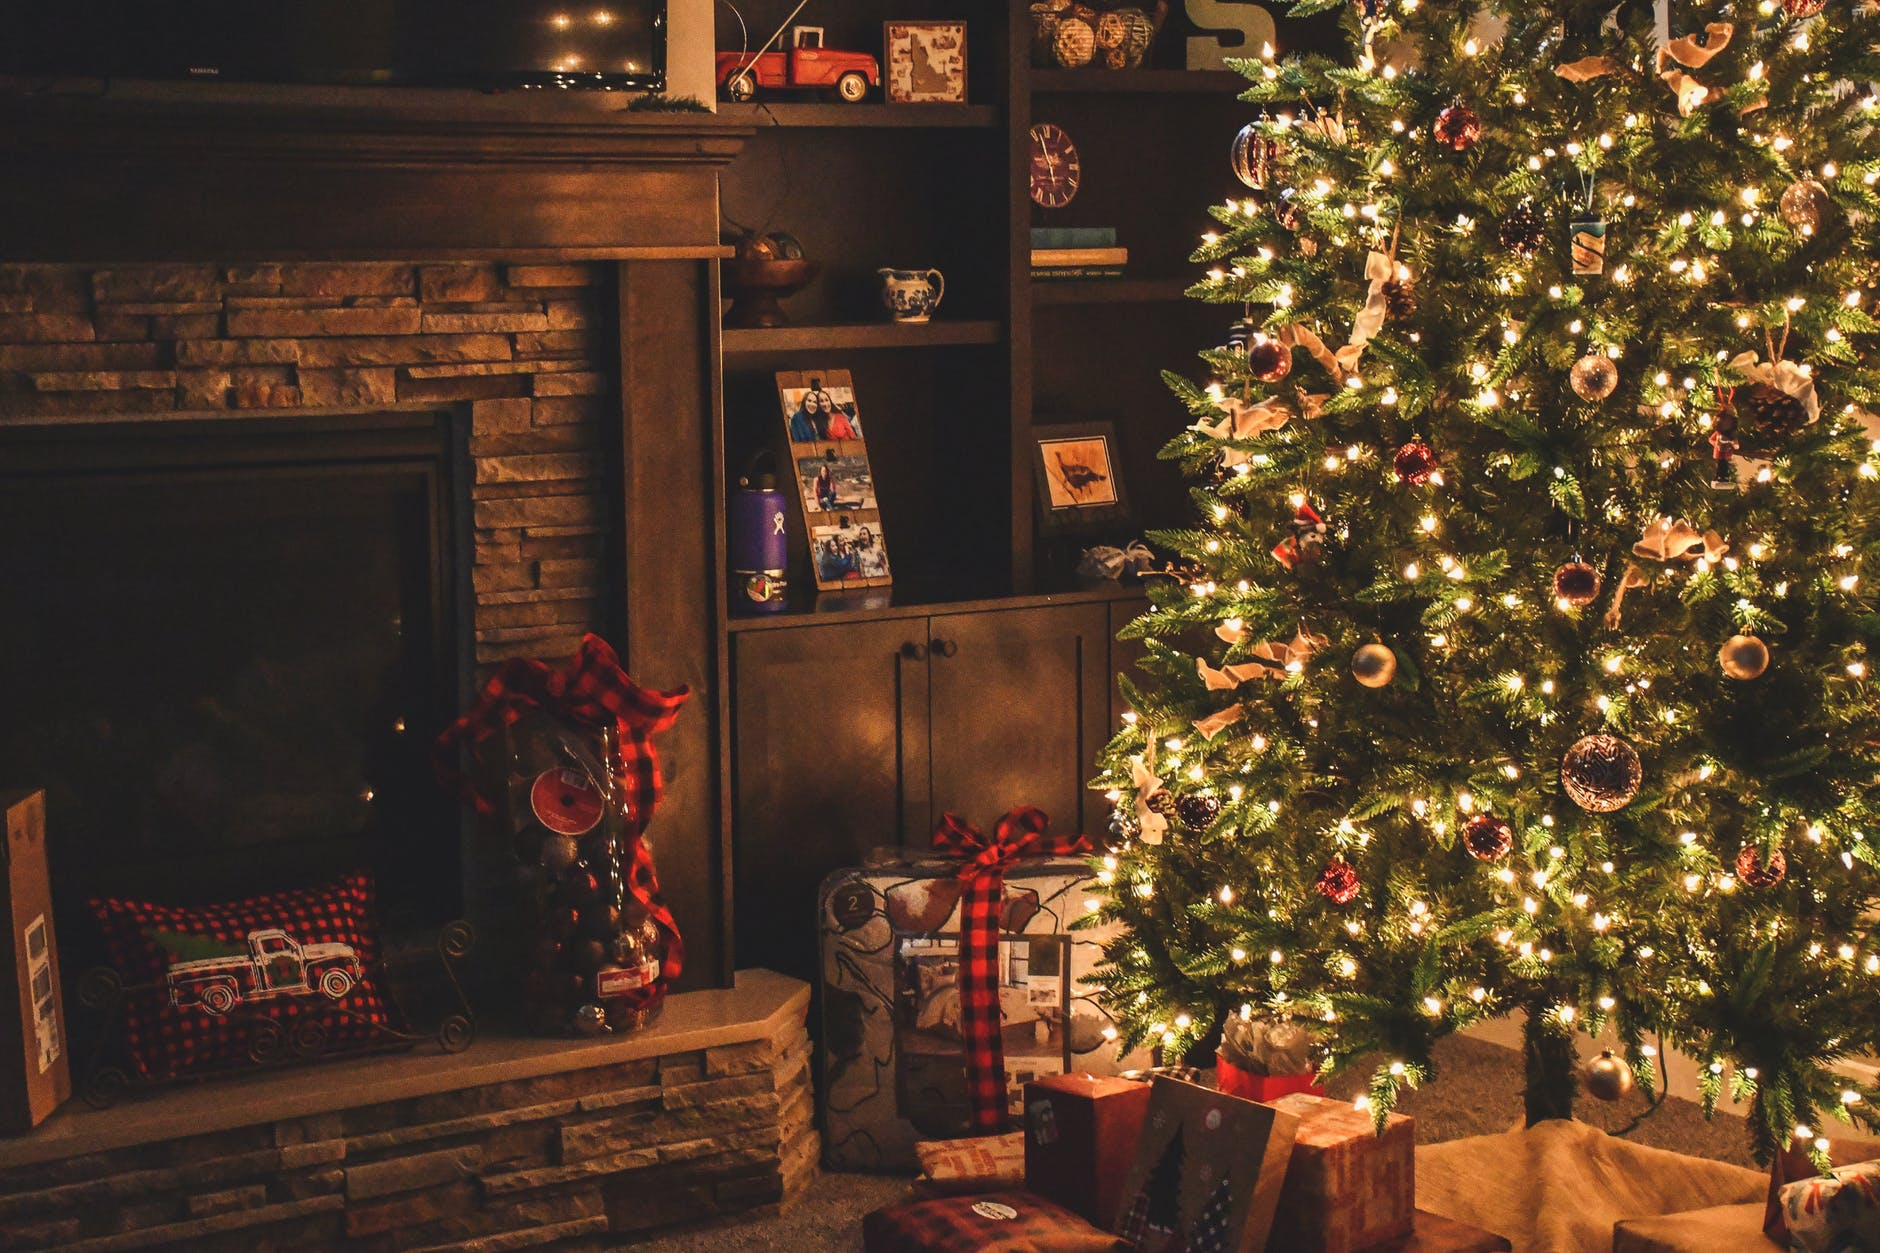 Decorate the Christmas tree in the classic style